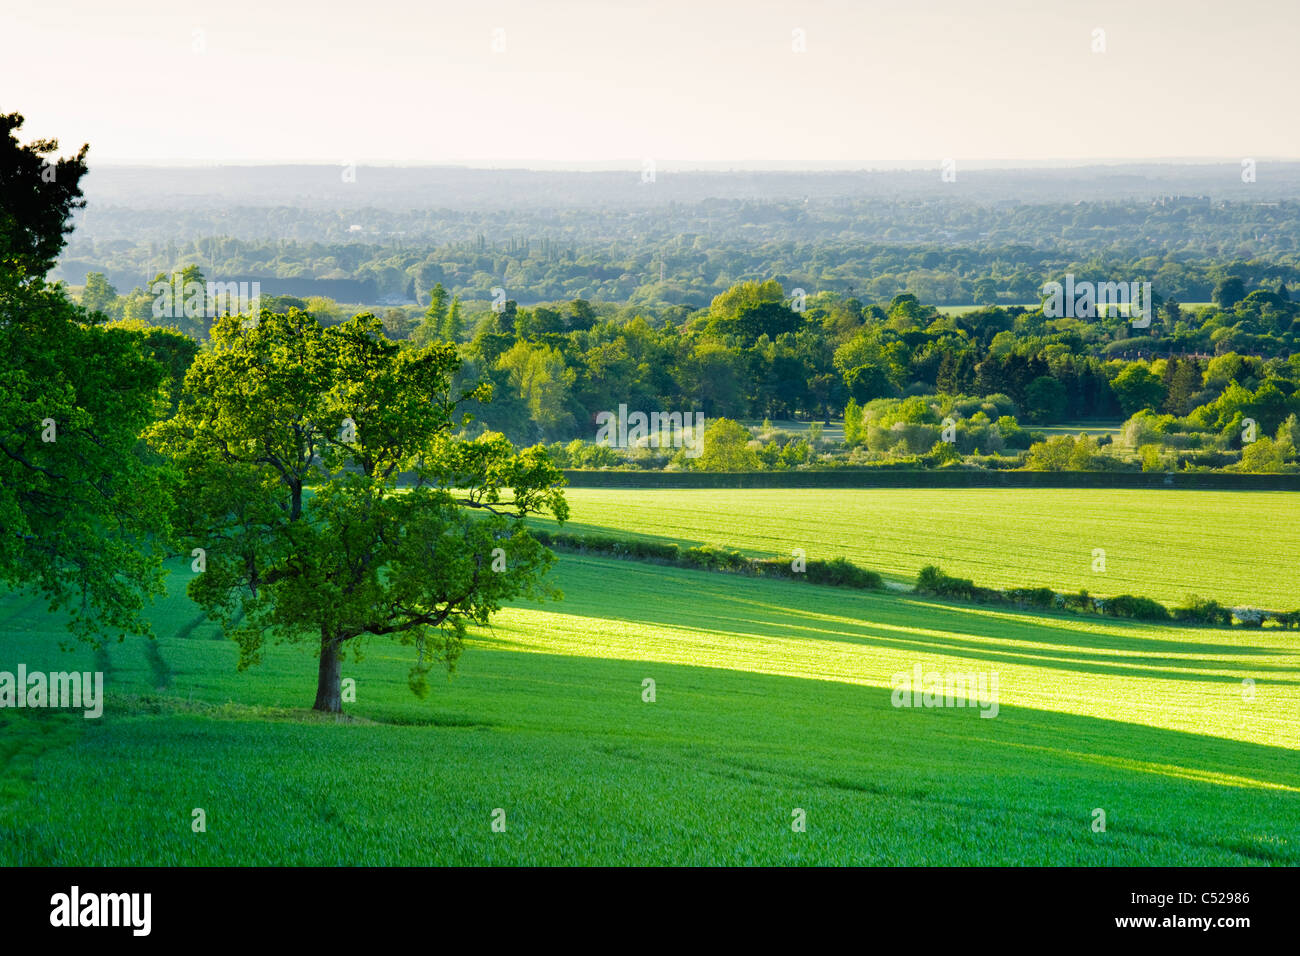 Farmland and countryside near Guildford, Surrey, UK. - Stock Image